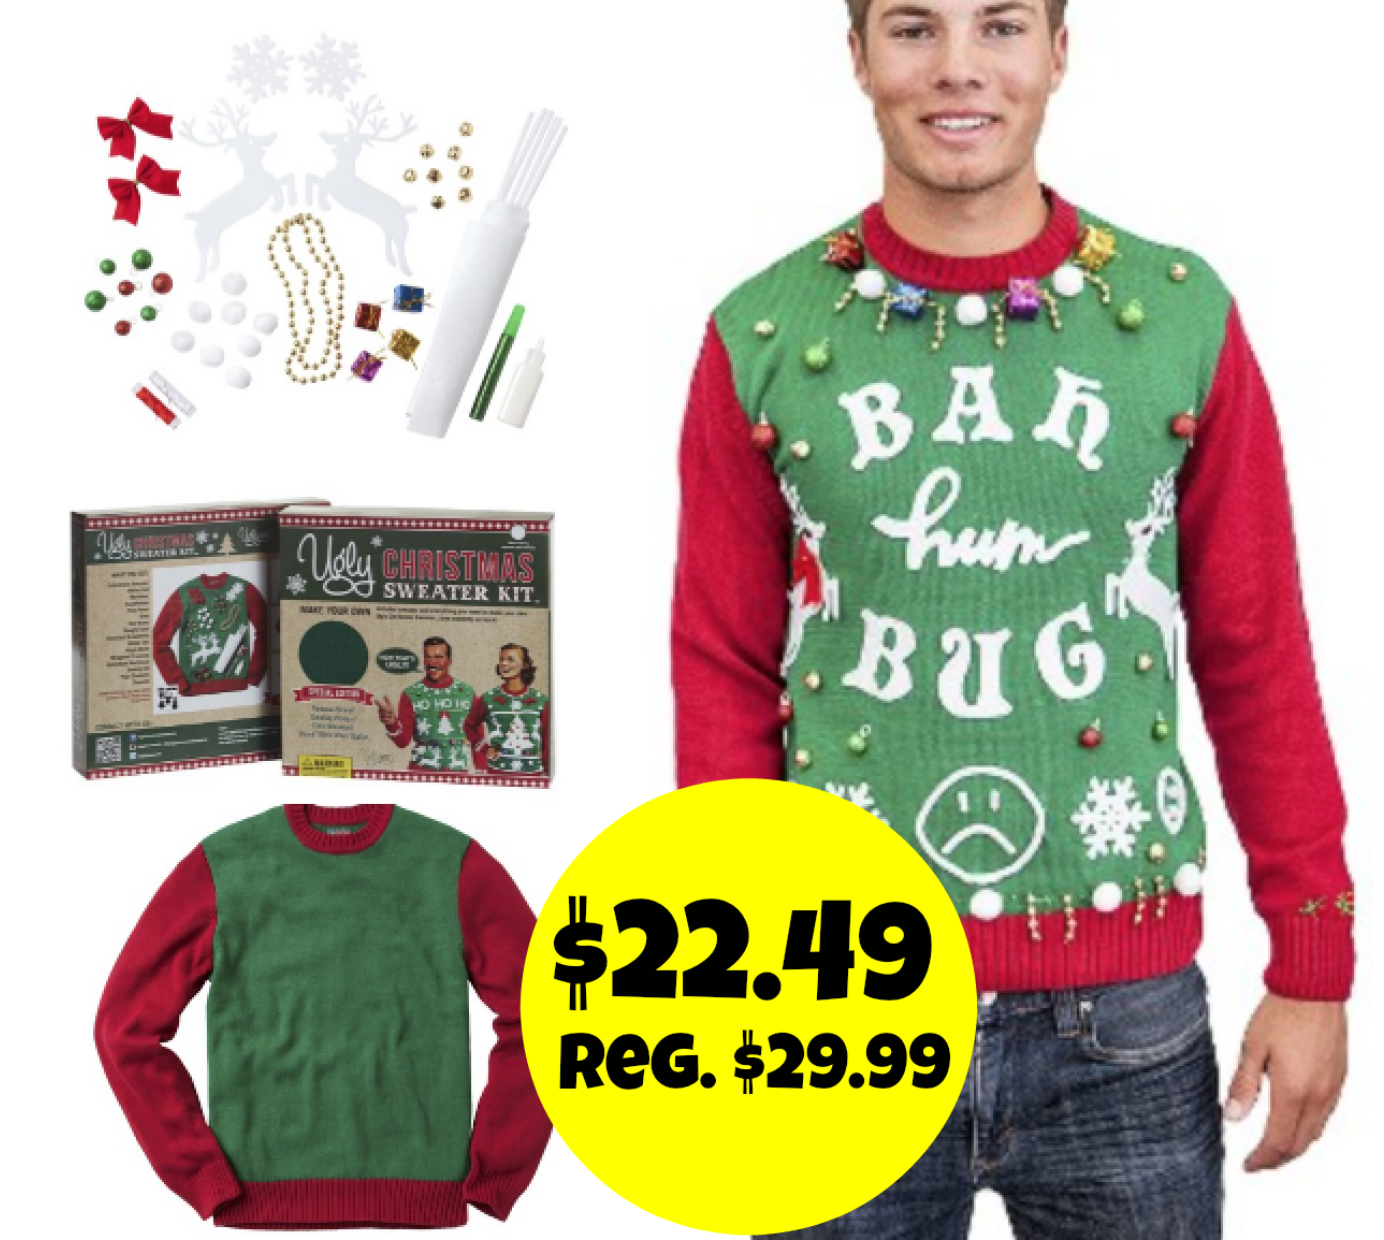 http://www.thebinderladies.com/2014/11/targetcom-diy-ugly-christmas-sweater.html#.VGphPofduyM